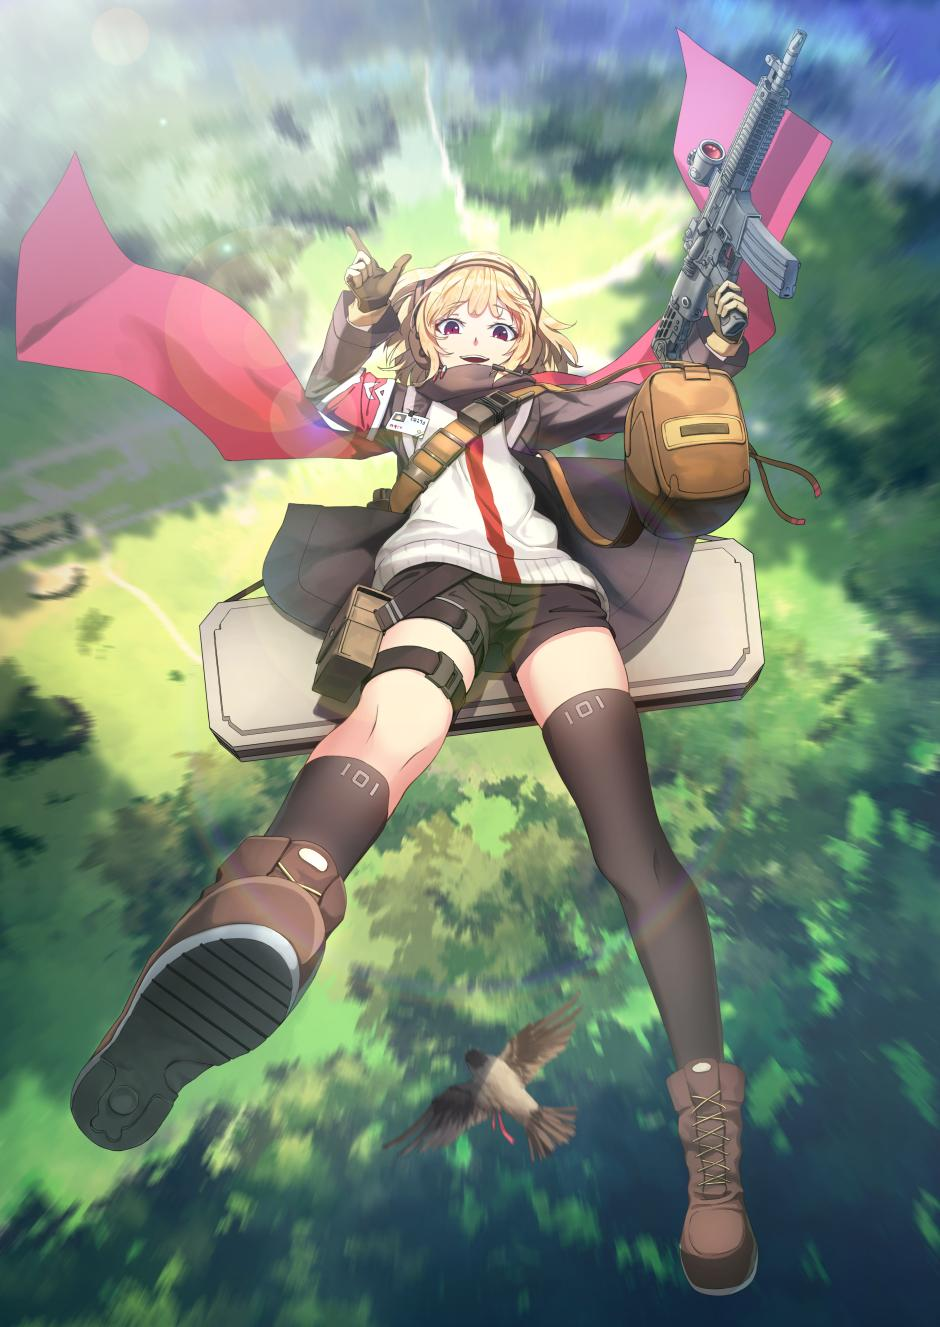 1girl armband assault_rifle asymmetrical_legwear backlighting bag bangs bird black_legwear black_shorts blonde_hair boots brown_bag brown_footwear brown_jacket cross-laced_footwear day falling finger_gun forest full_body girls_frontline gloves gun hairband highres holding holding_gun holding_weapon jacket kneehighs leg_strap looking_at_viewer nature open_clothes open_jacket open_mouth outdoors pouch radio red_eyes red_scarf rifle scarf scw_(girls_frontline) scw_(gun) short_hair short_shorts shorts shoulder_bag shoulder_strap single_kneehigh single_thighhigh smile solo thigh-highs thigh_pouch tree vikpie weapon